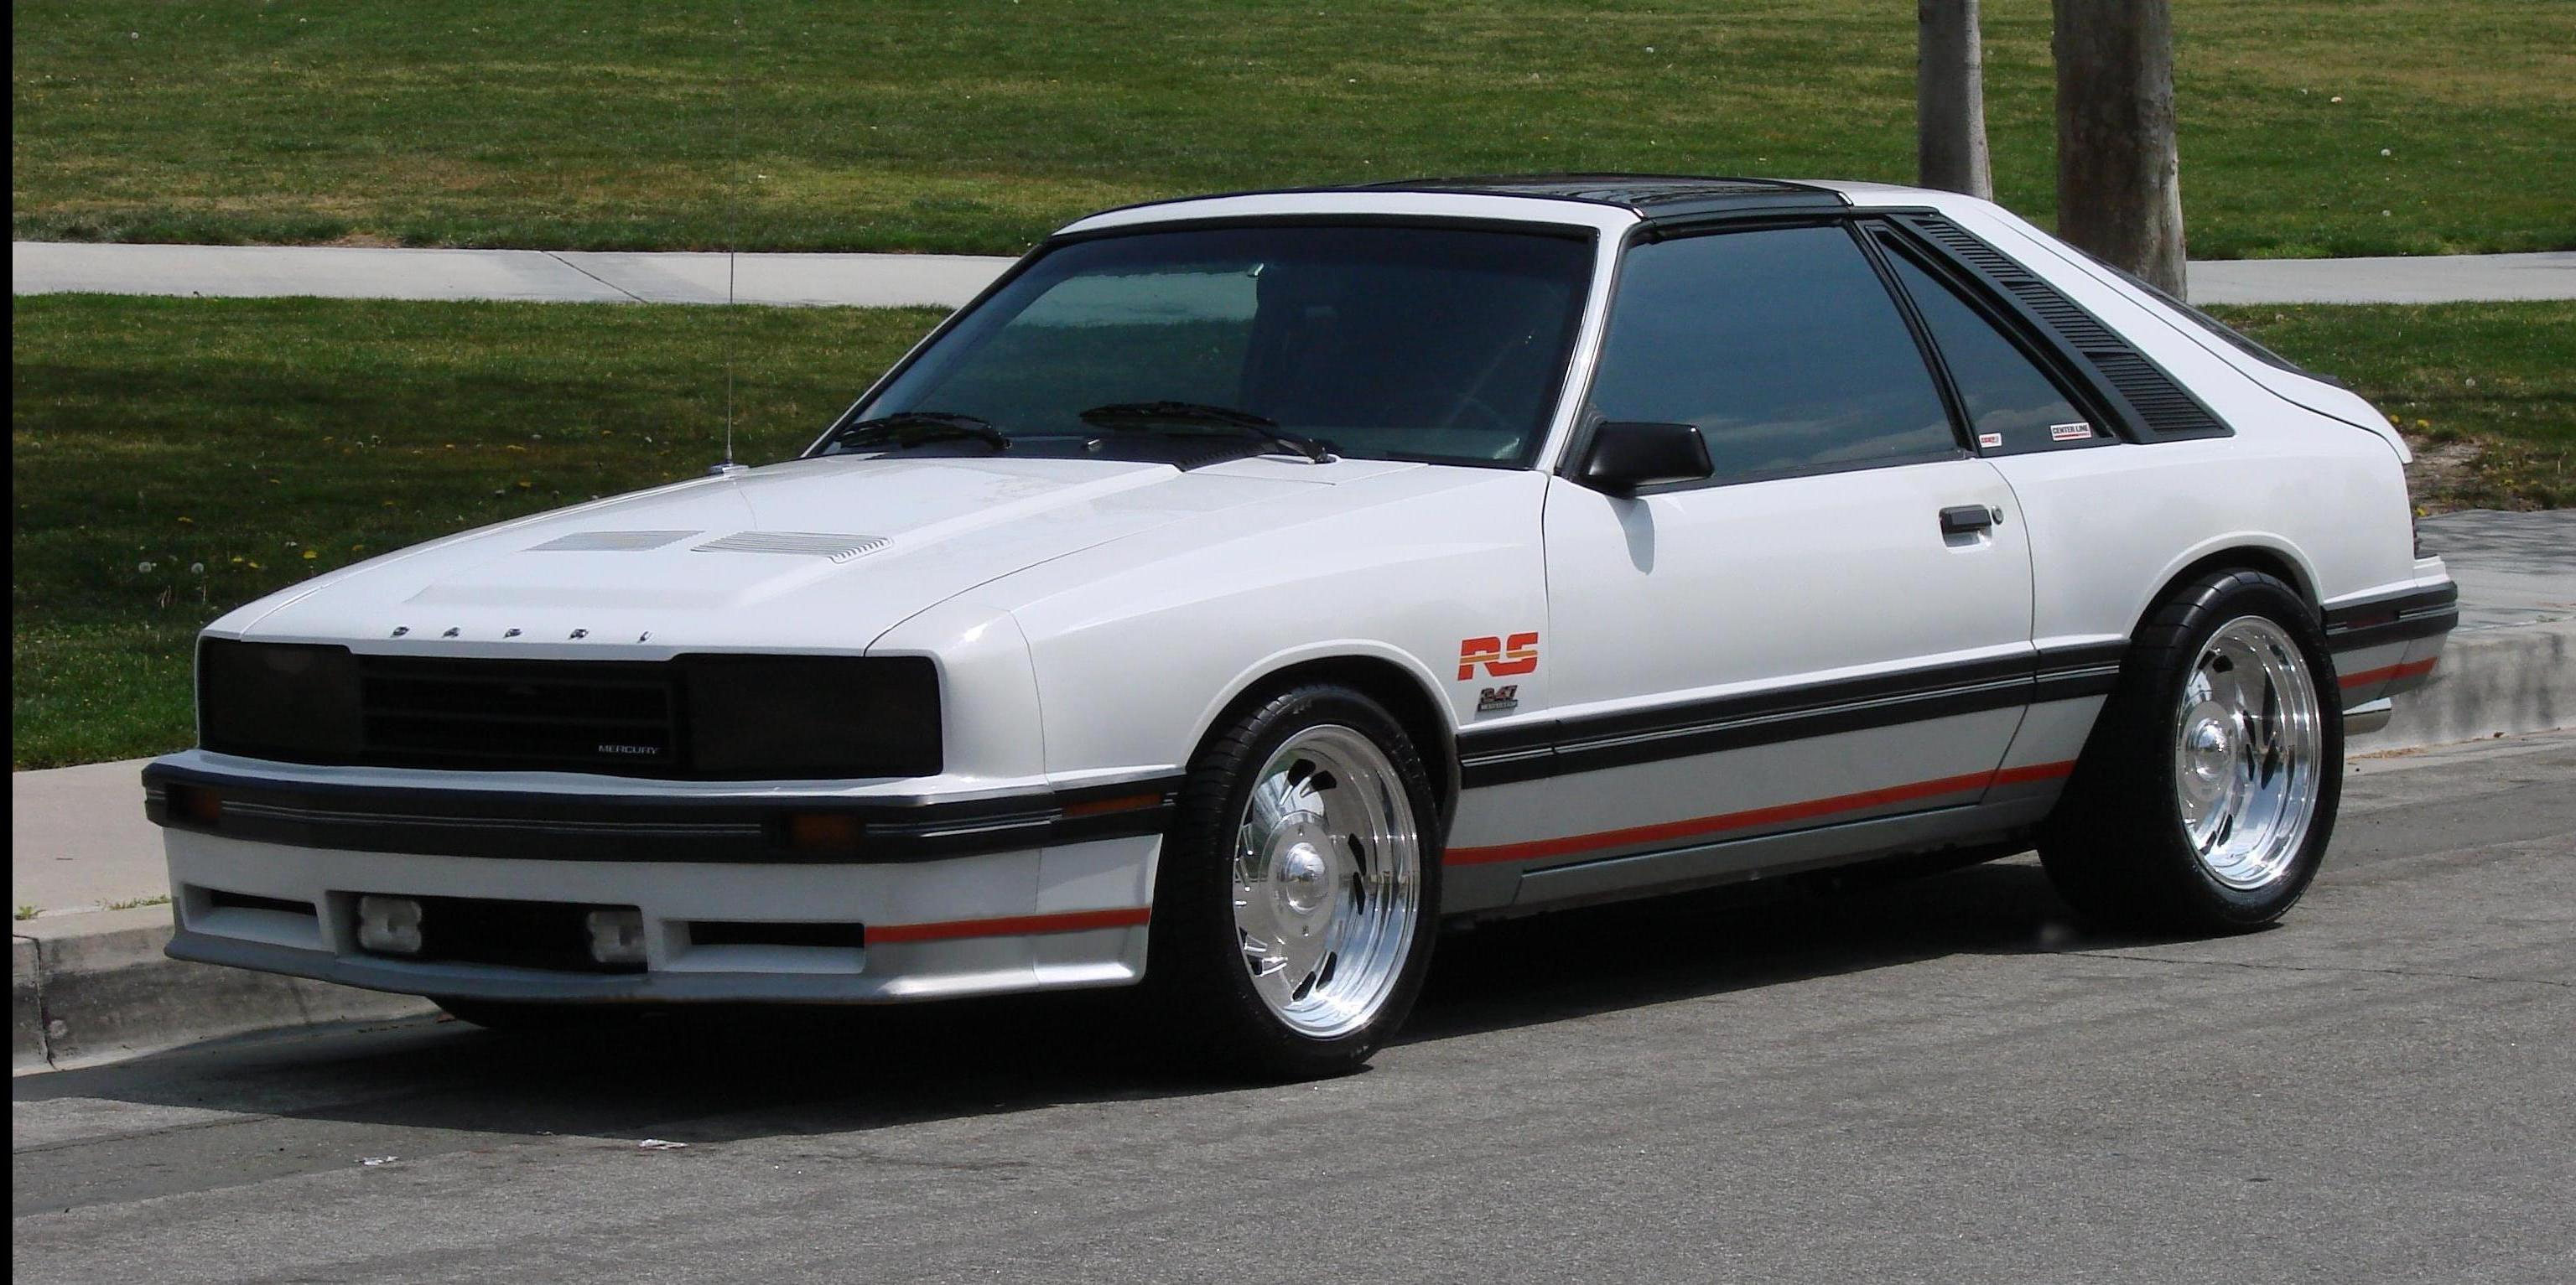 rawright's 1984 Mercury Capri